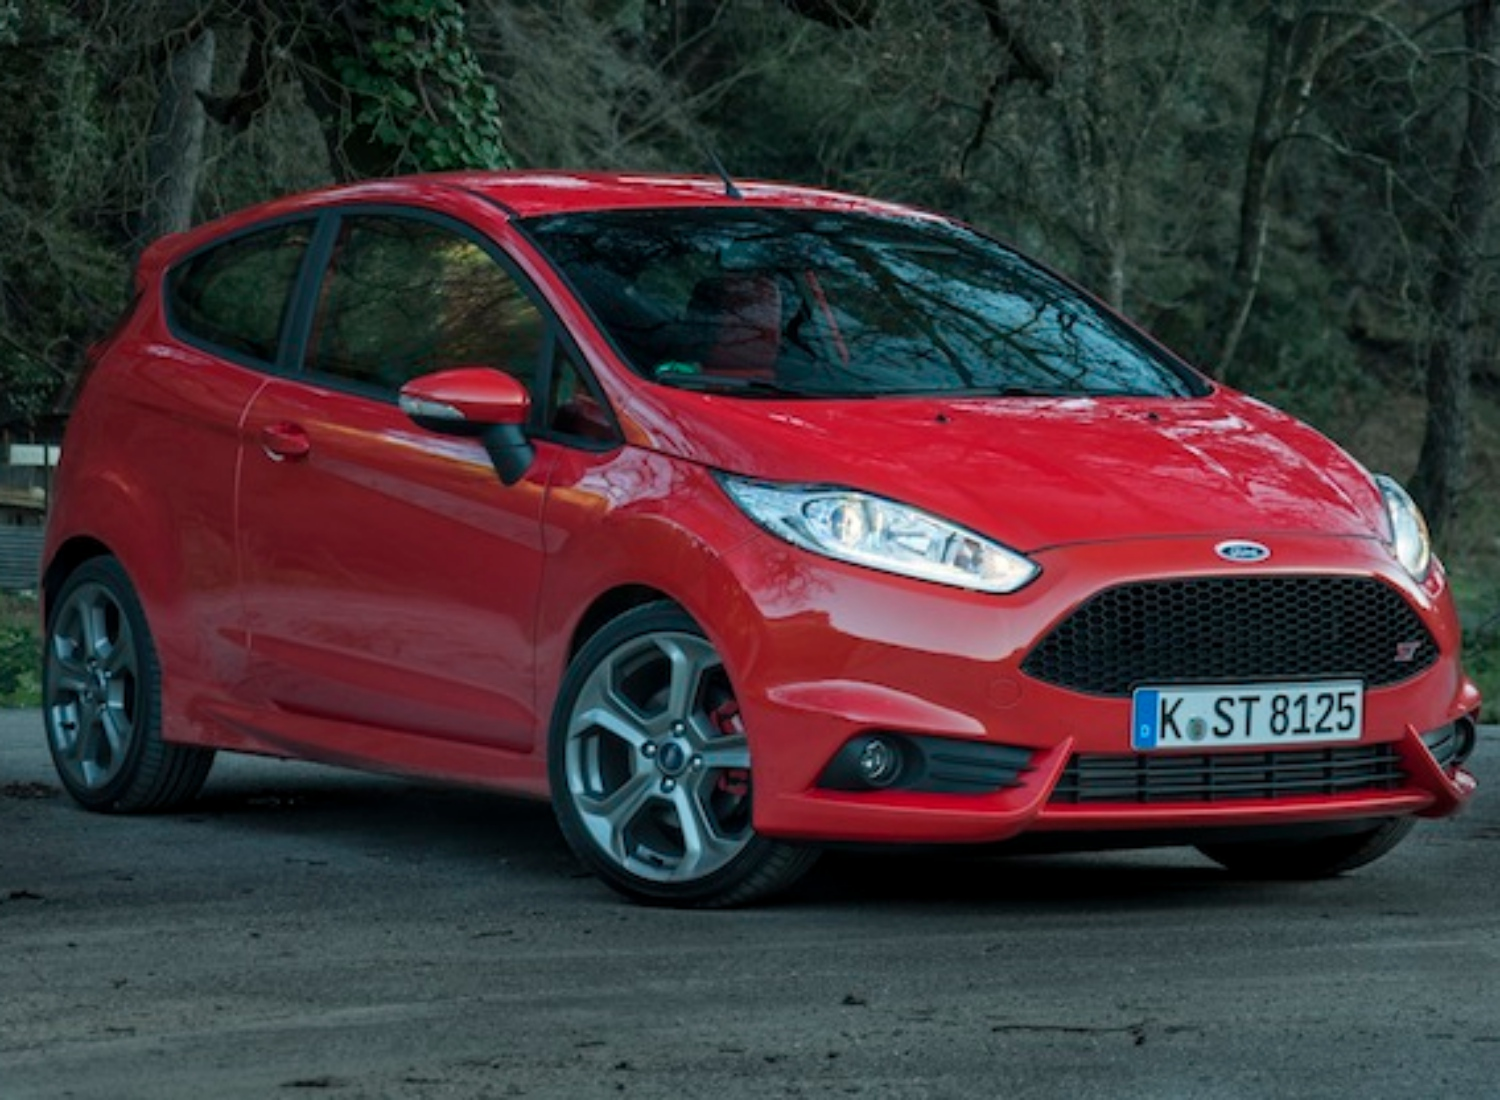 ford fiesta rs 2014 images galleries. Black Bedroom Furniture Sets. Home Design Ideas